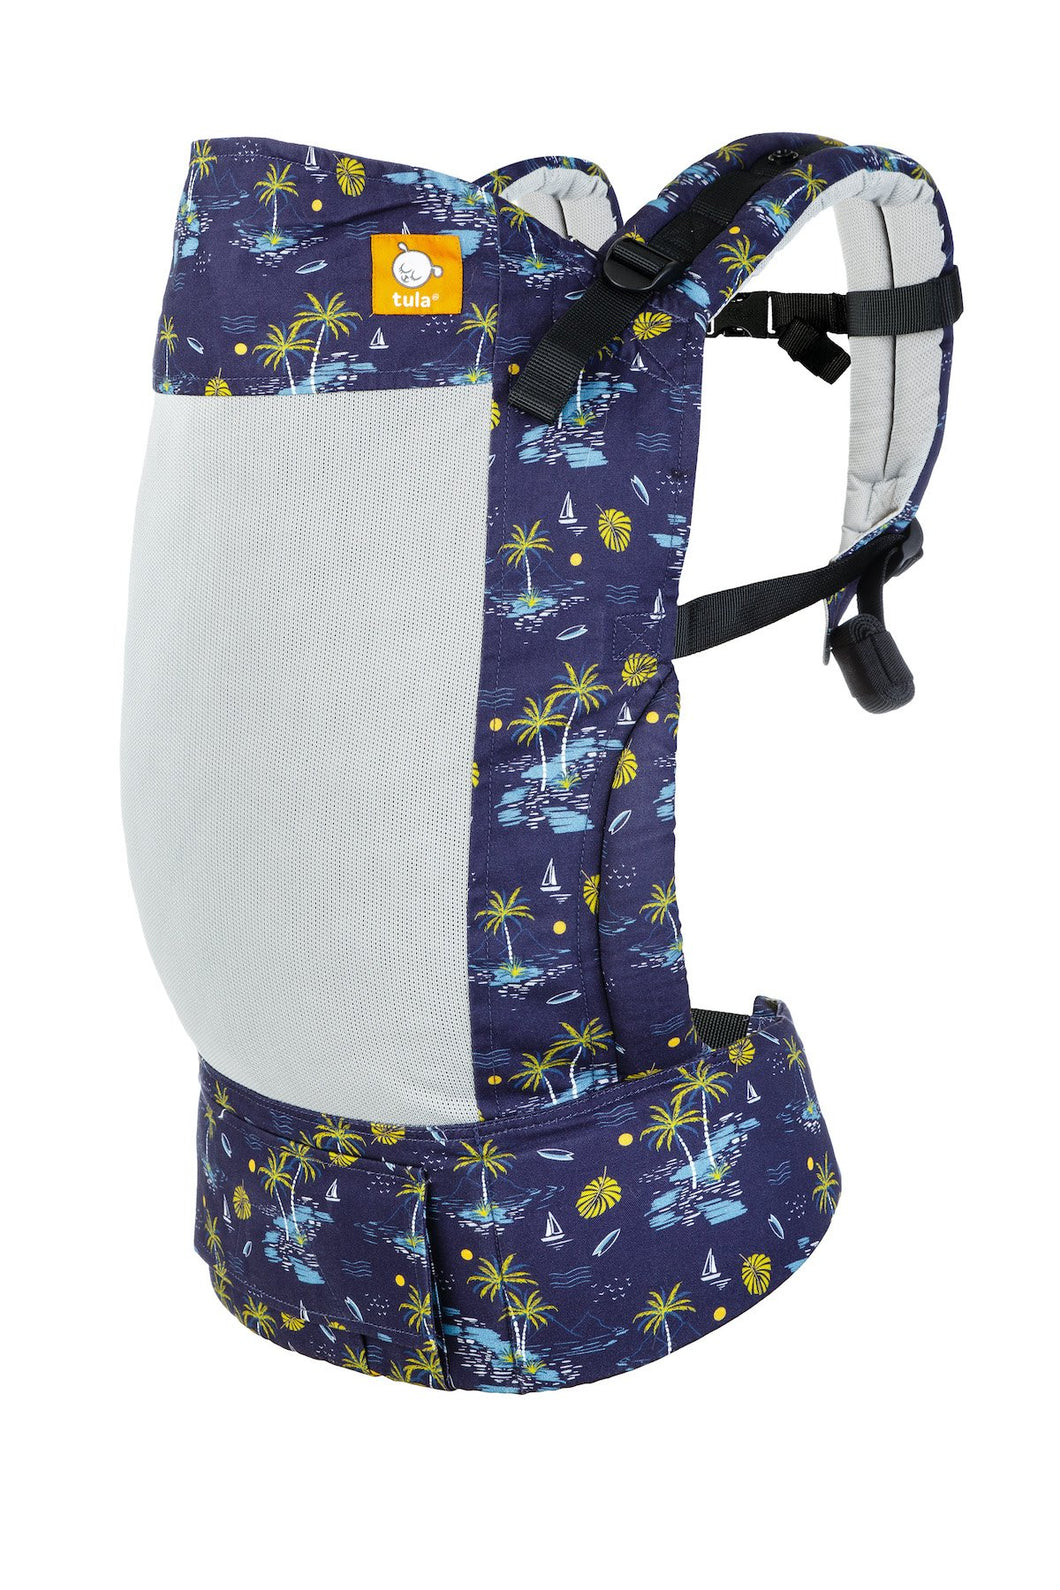 Coast Vacation - Tula Toddler Carrier